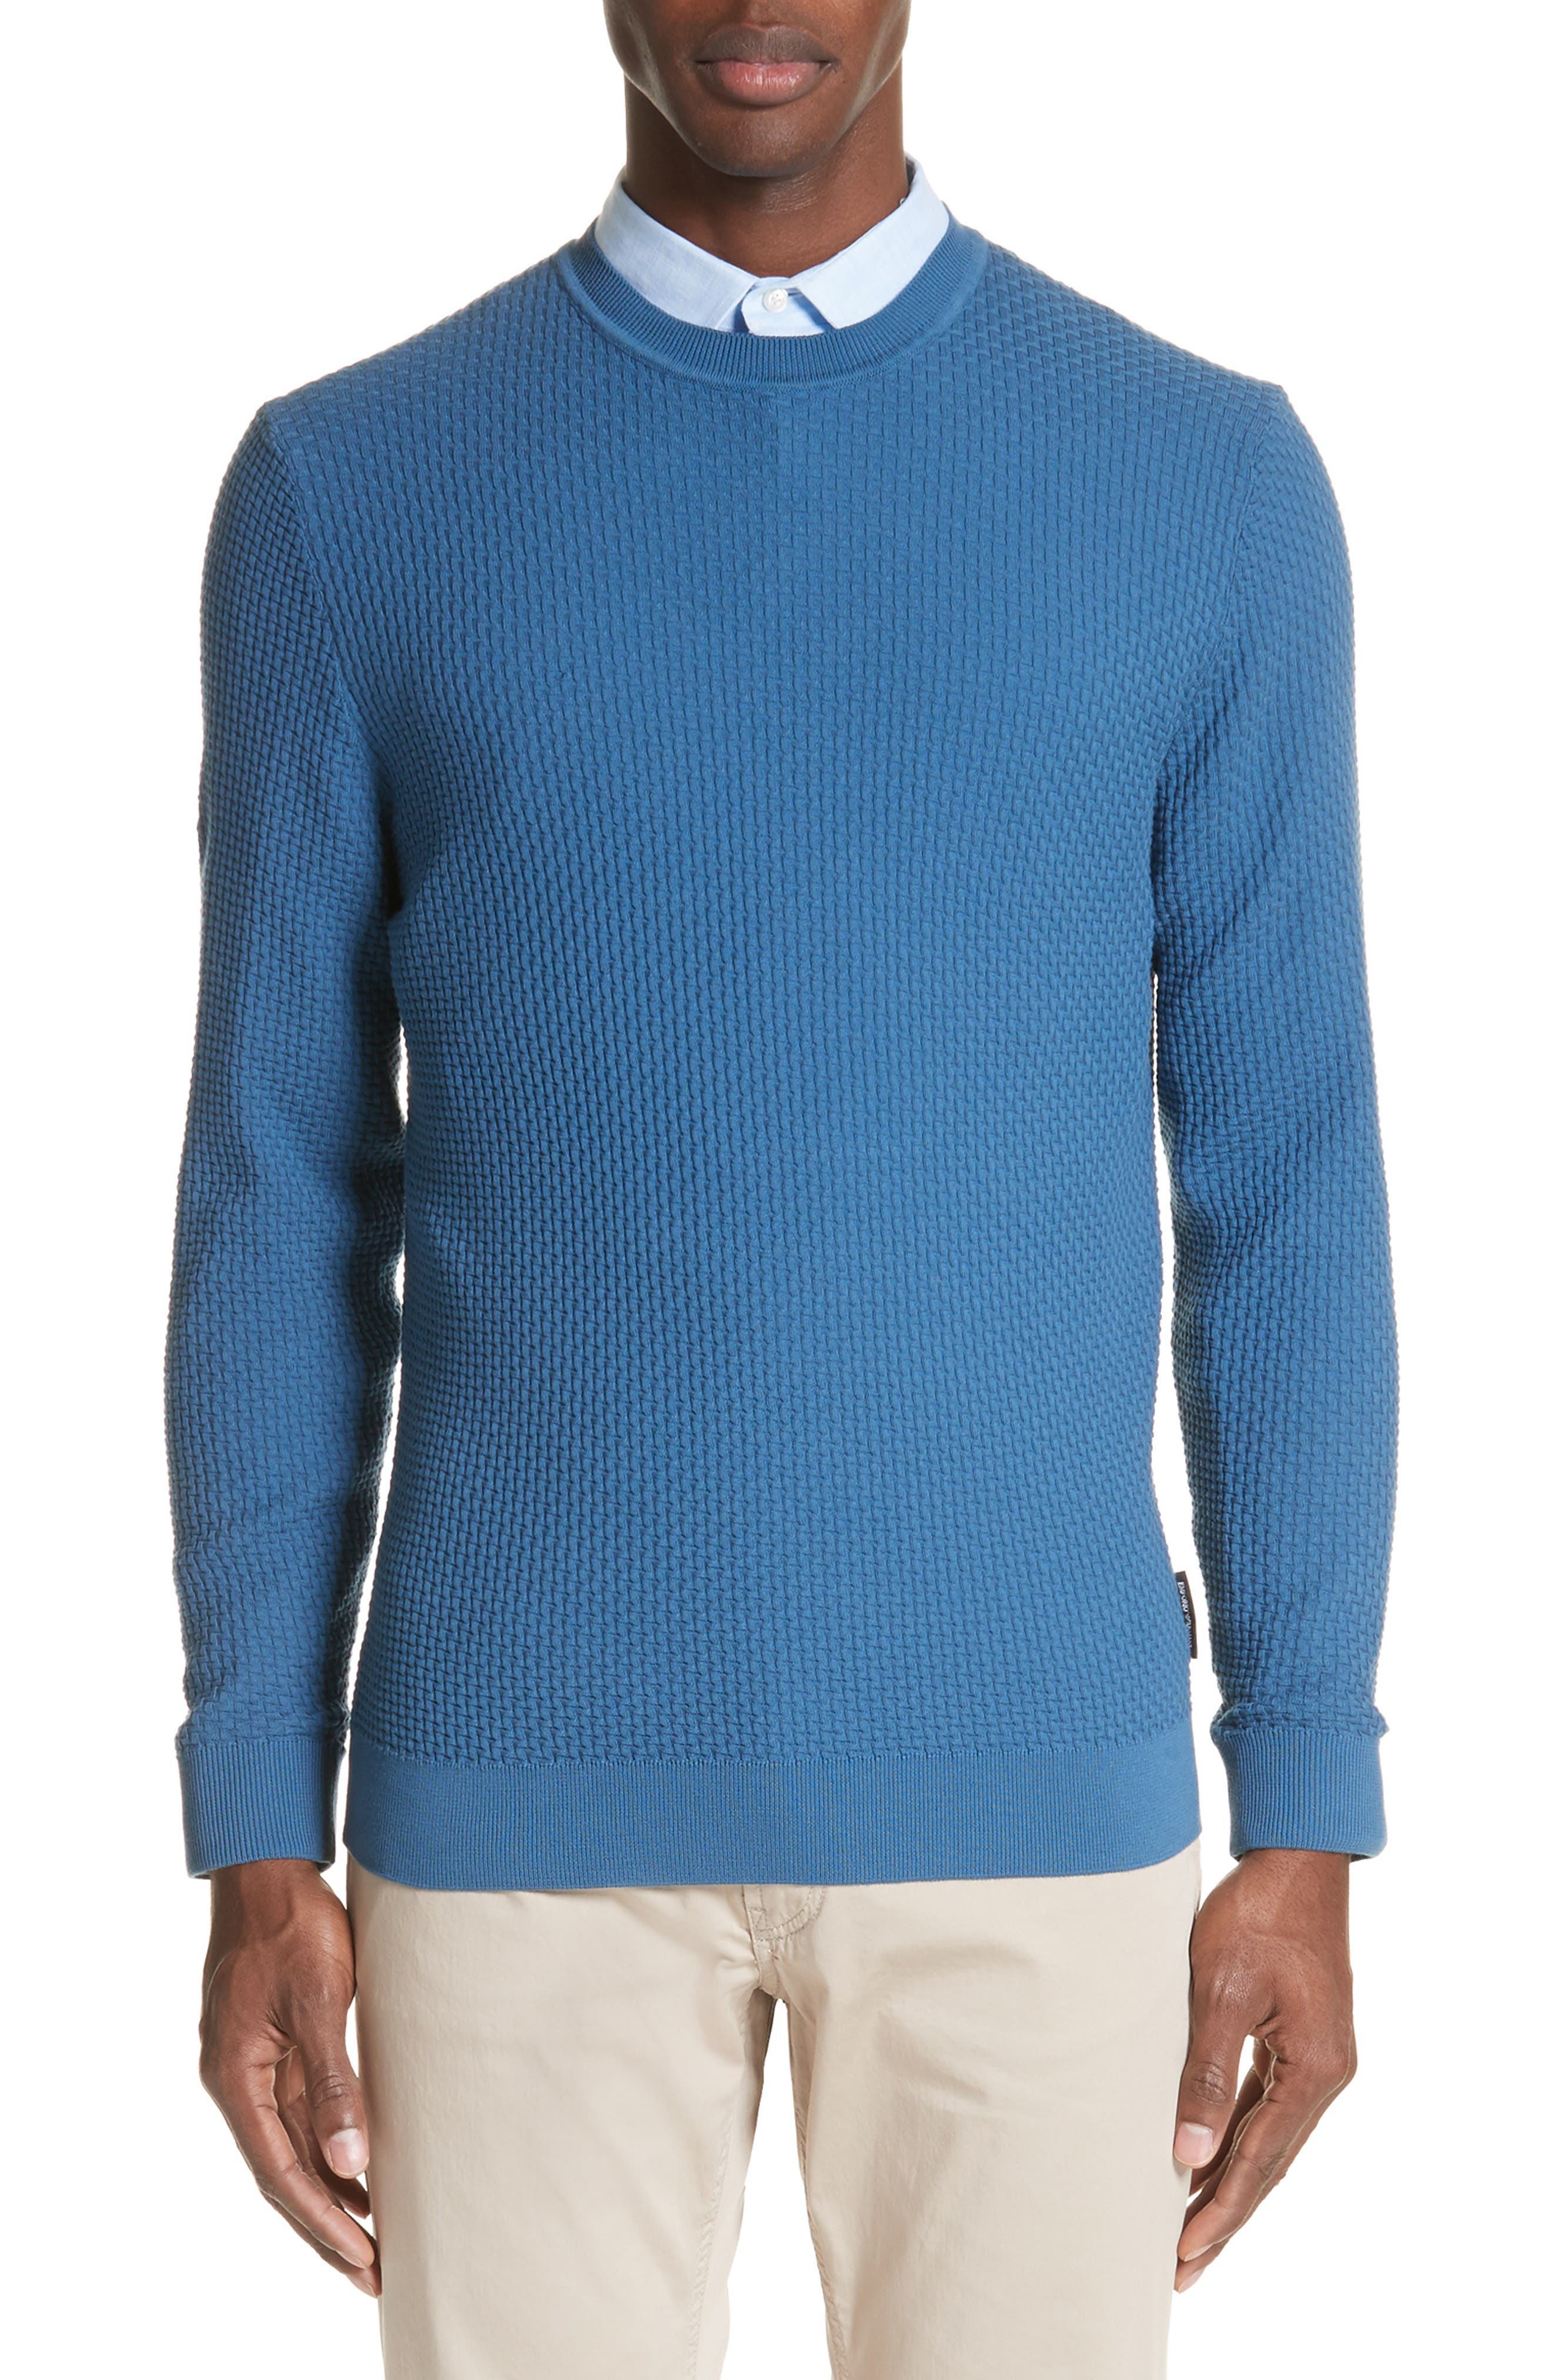 Slim Fit Textured Crew Sweater,                             Main thumbnail 1, color,                             Avio Scuro